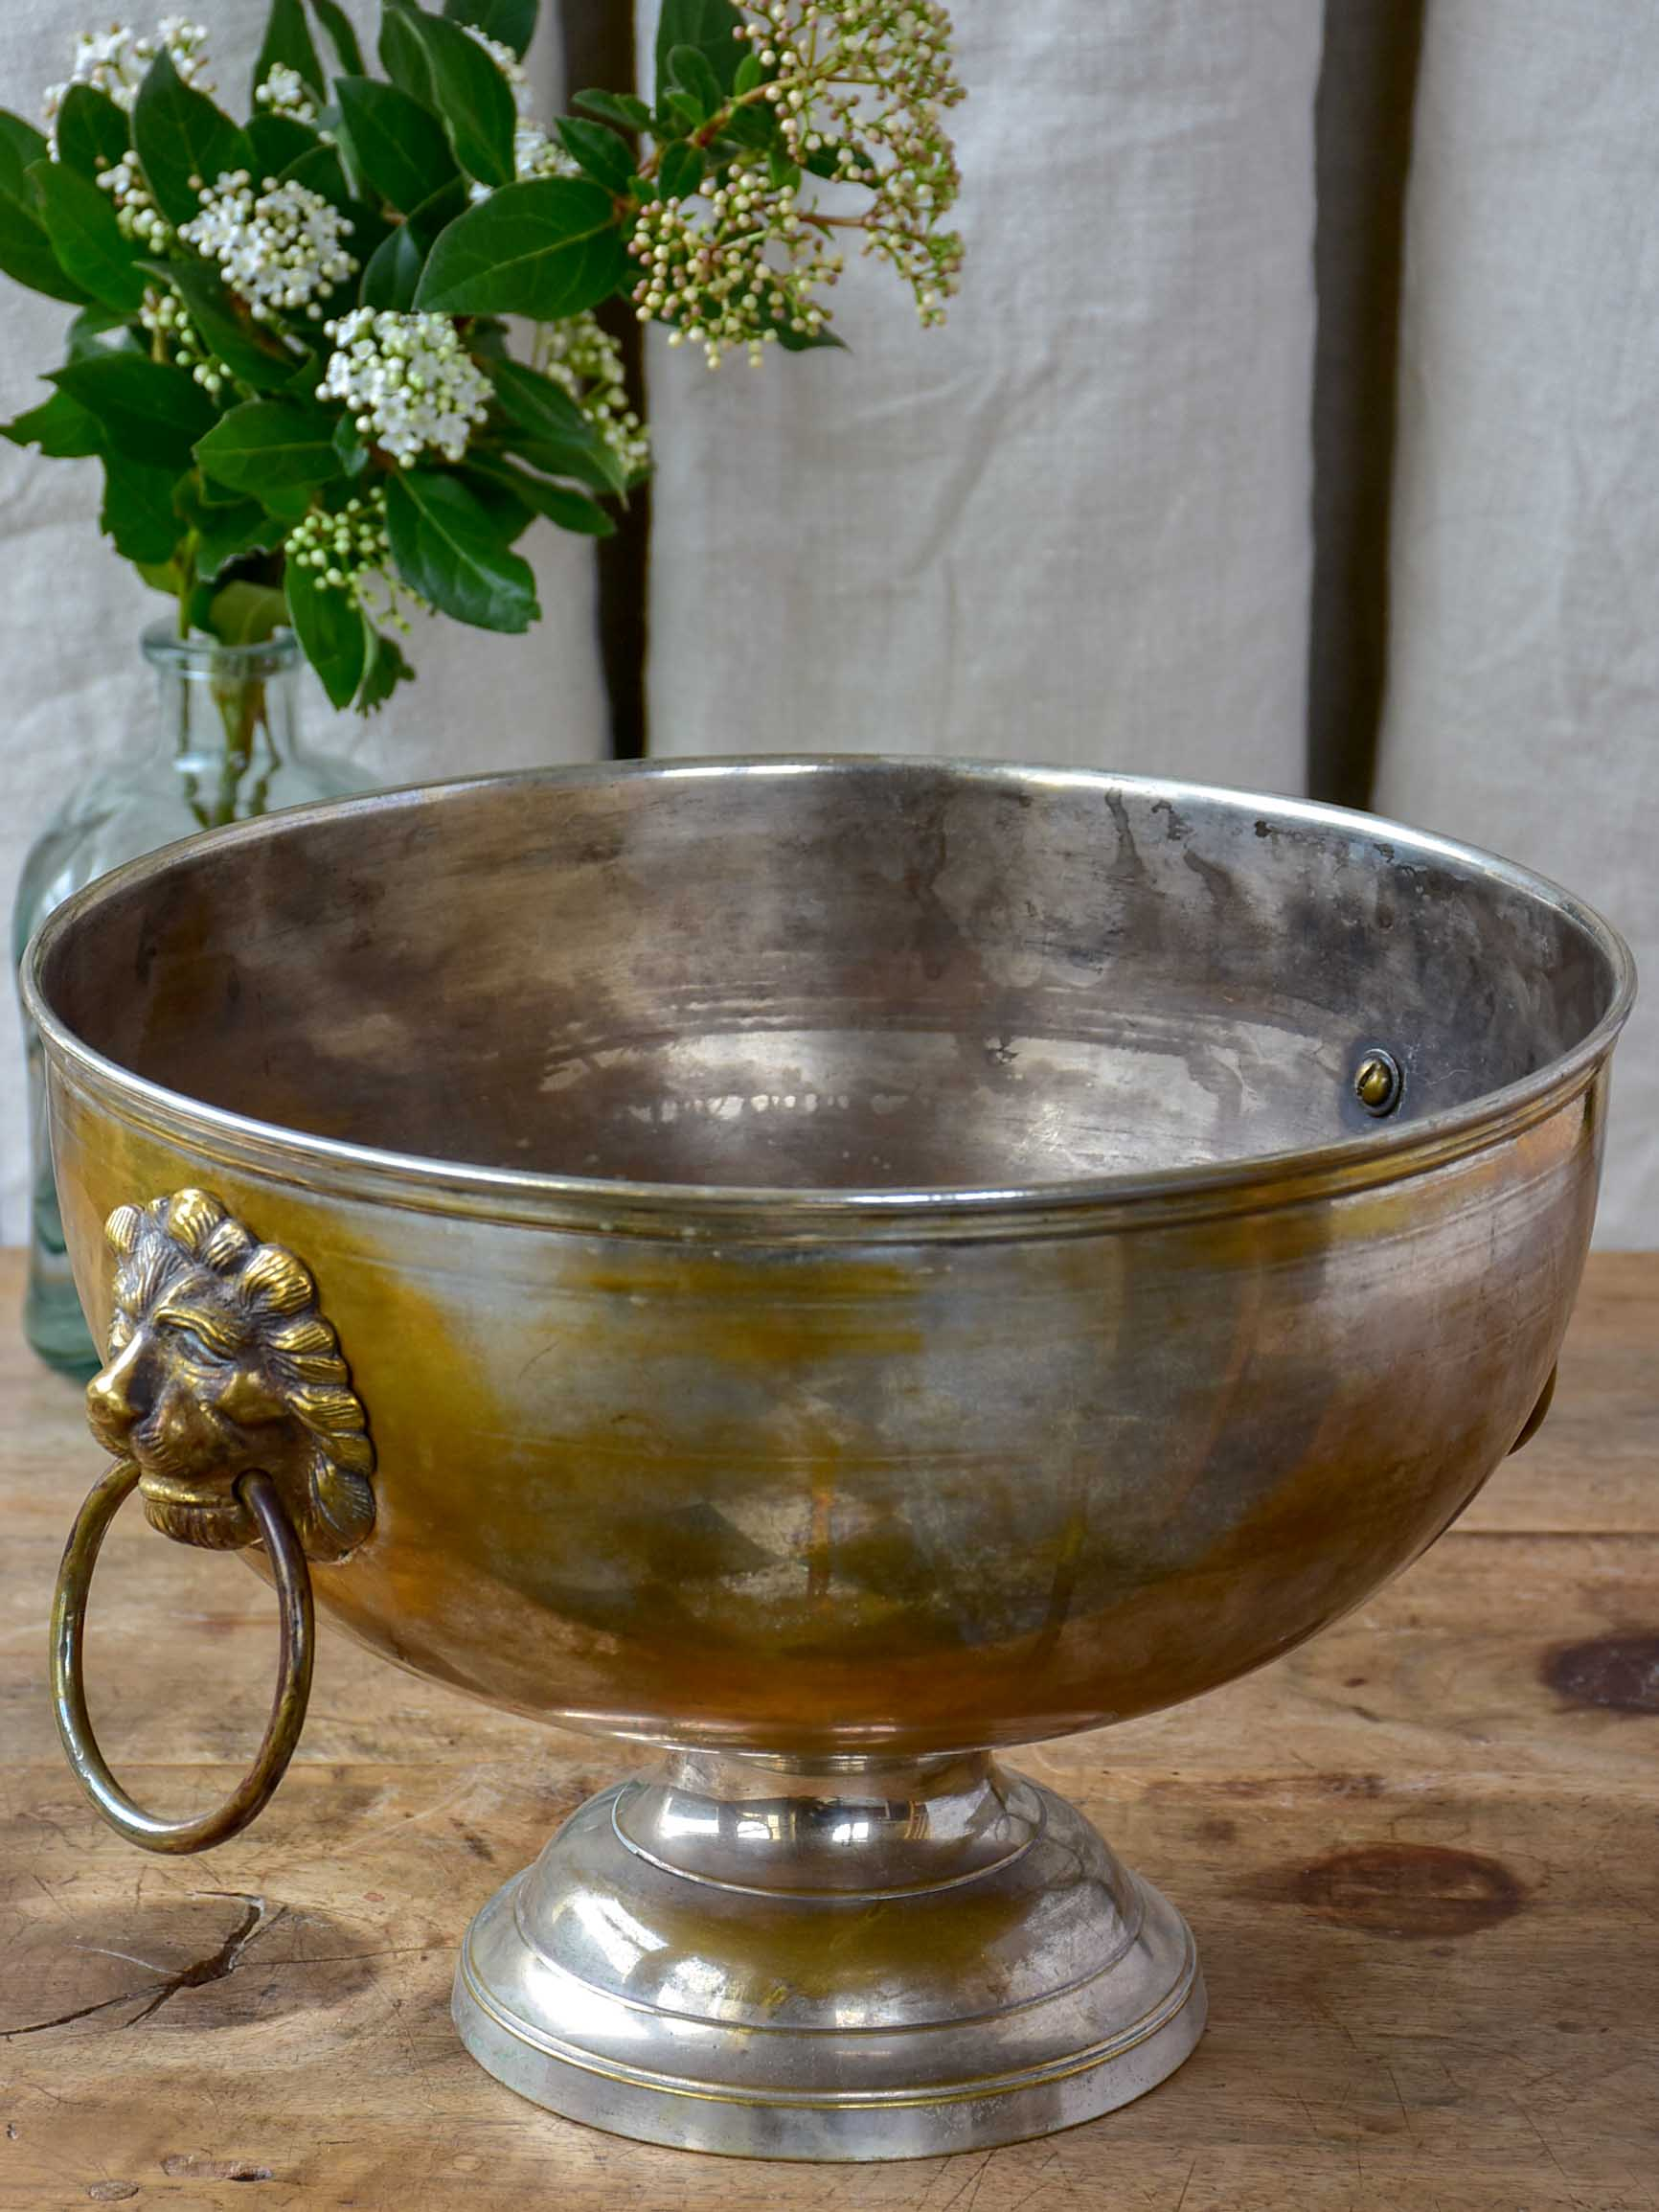 Antique French ice-bucket with lion's head handles